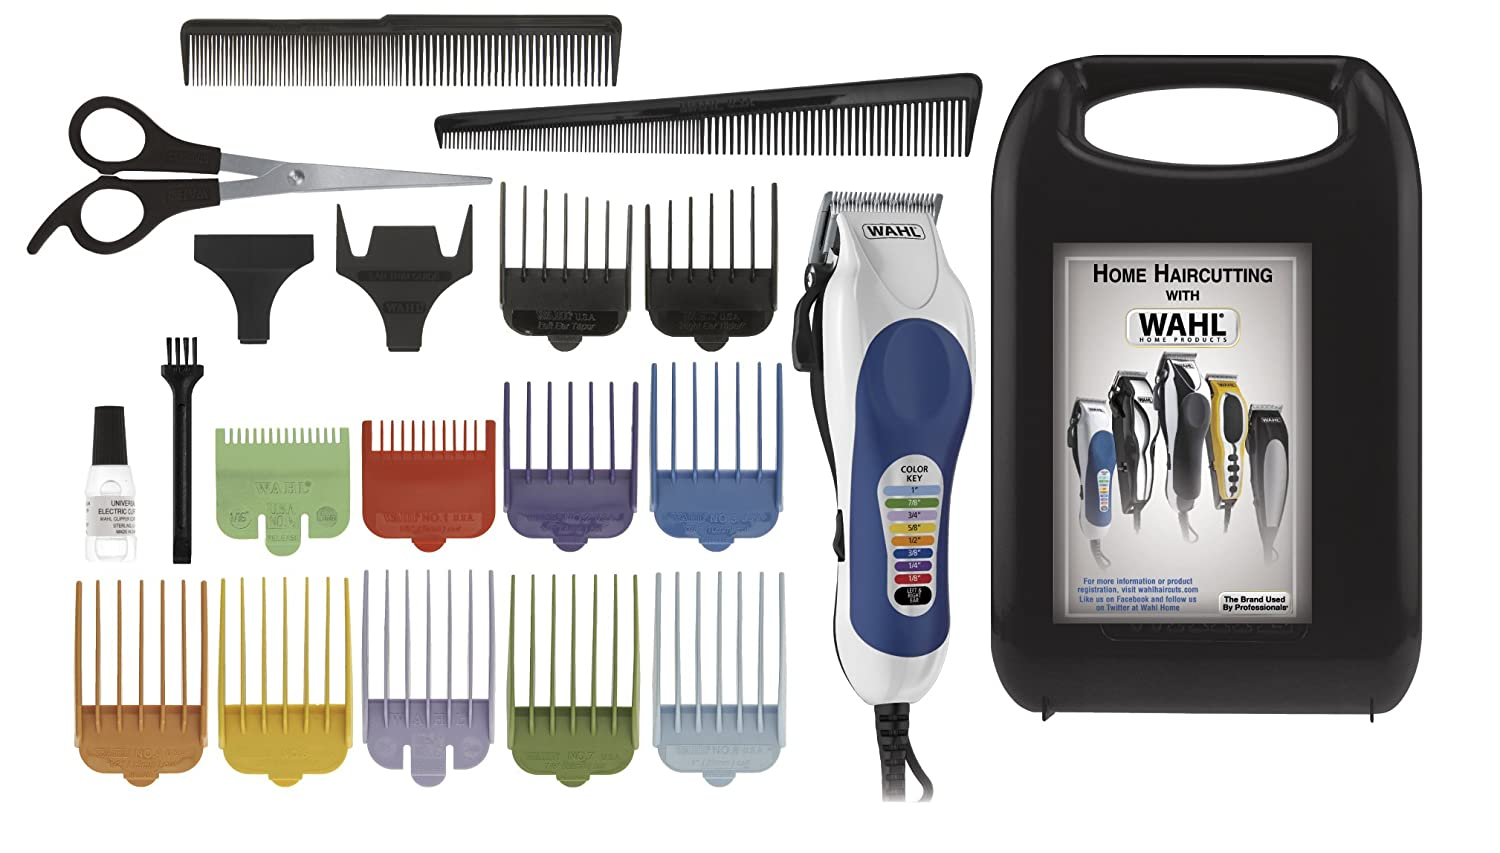 conair home haircutting kit instructions